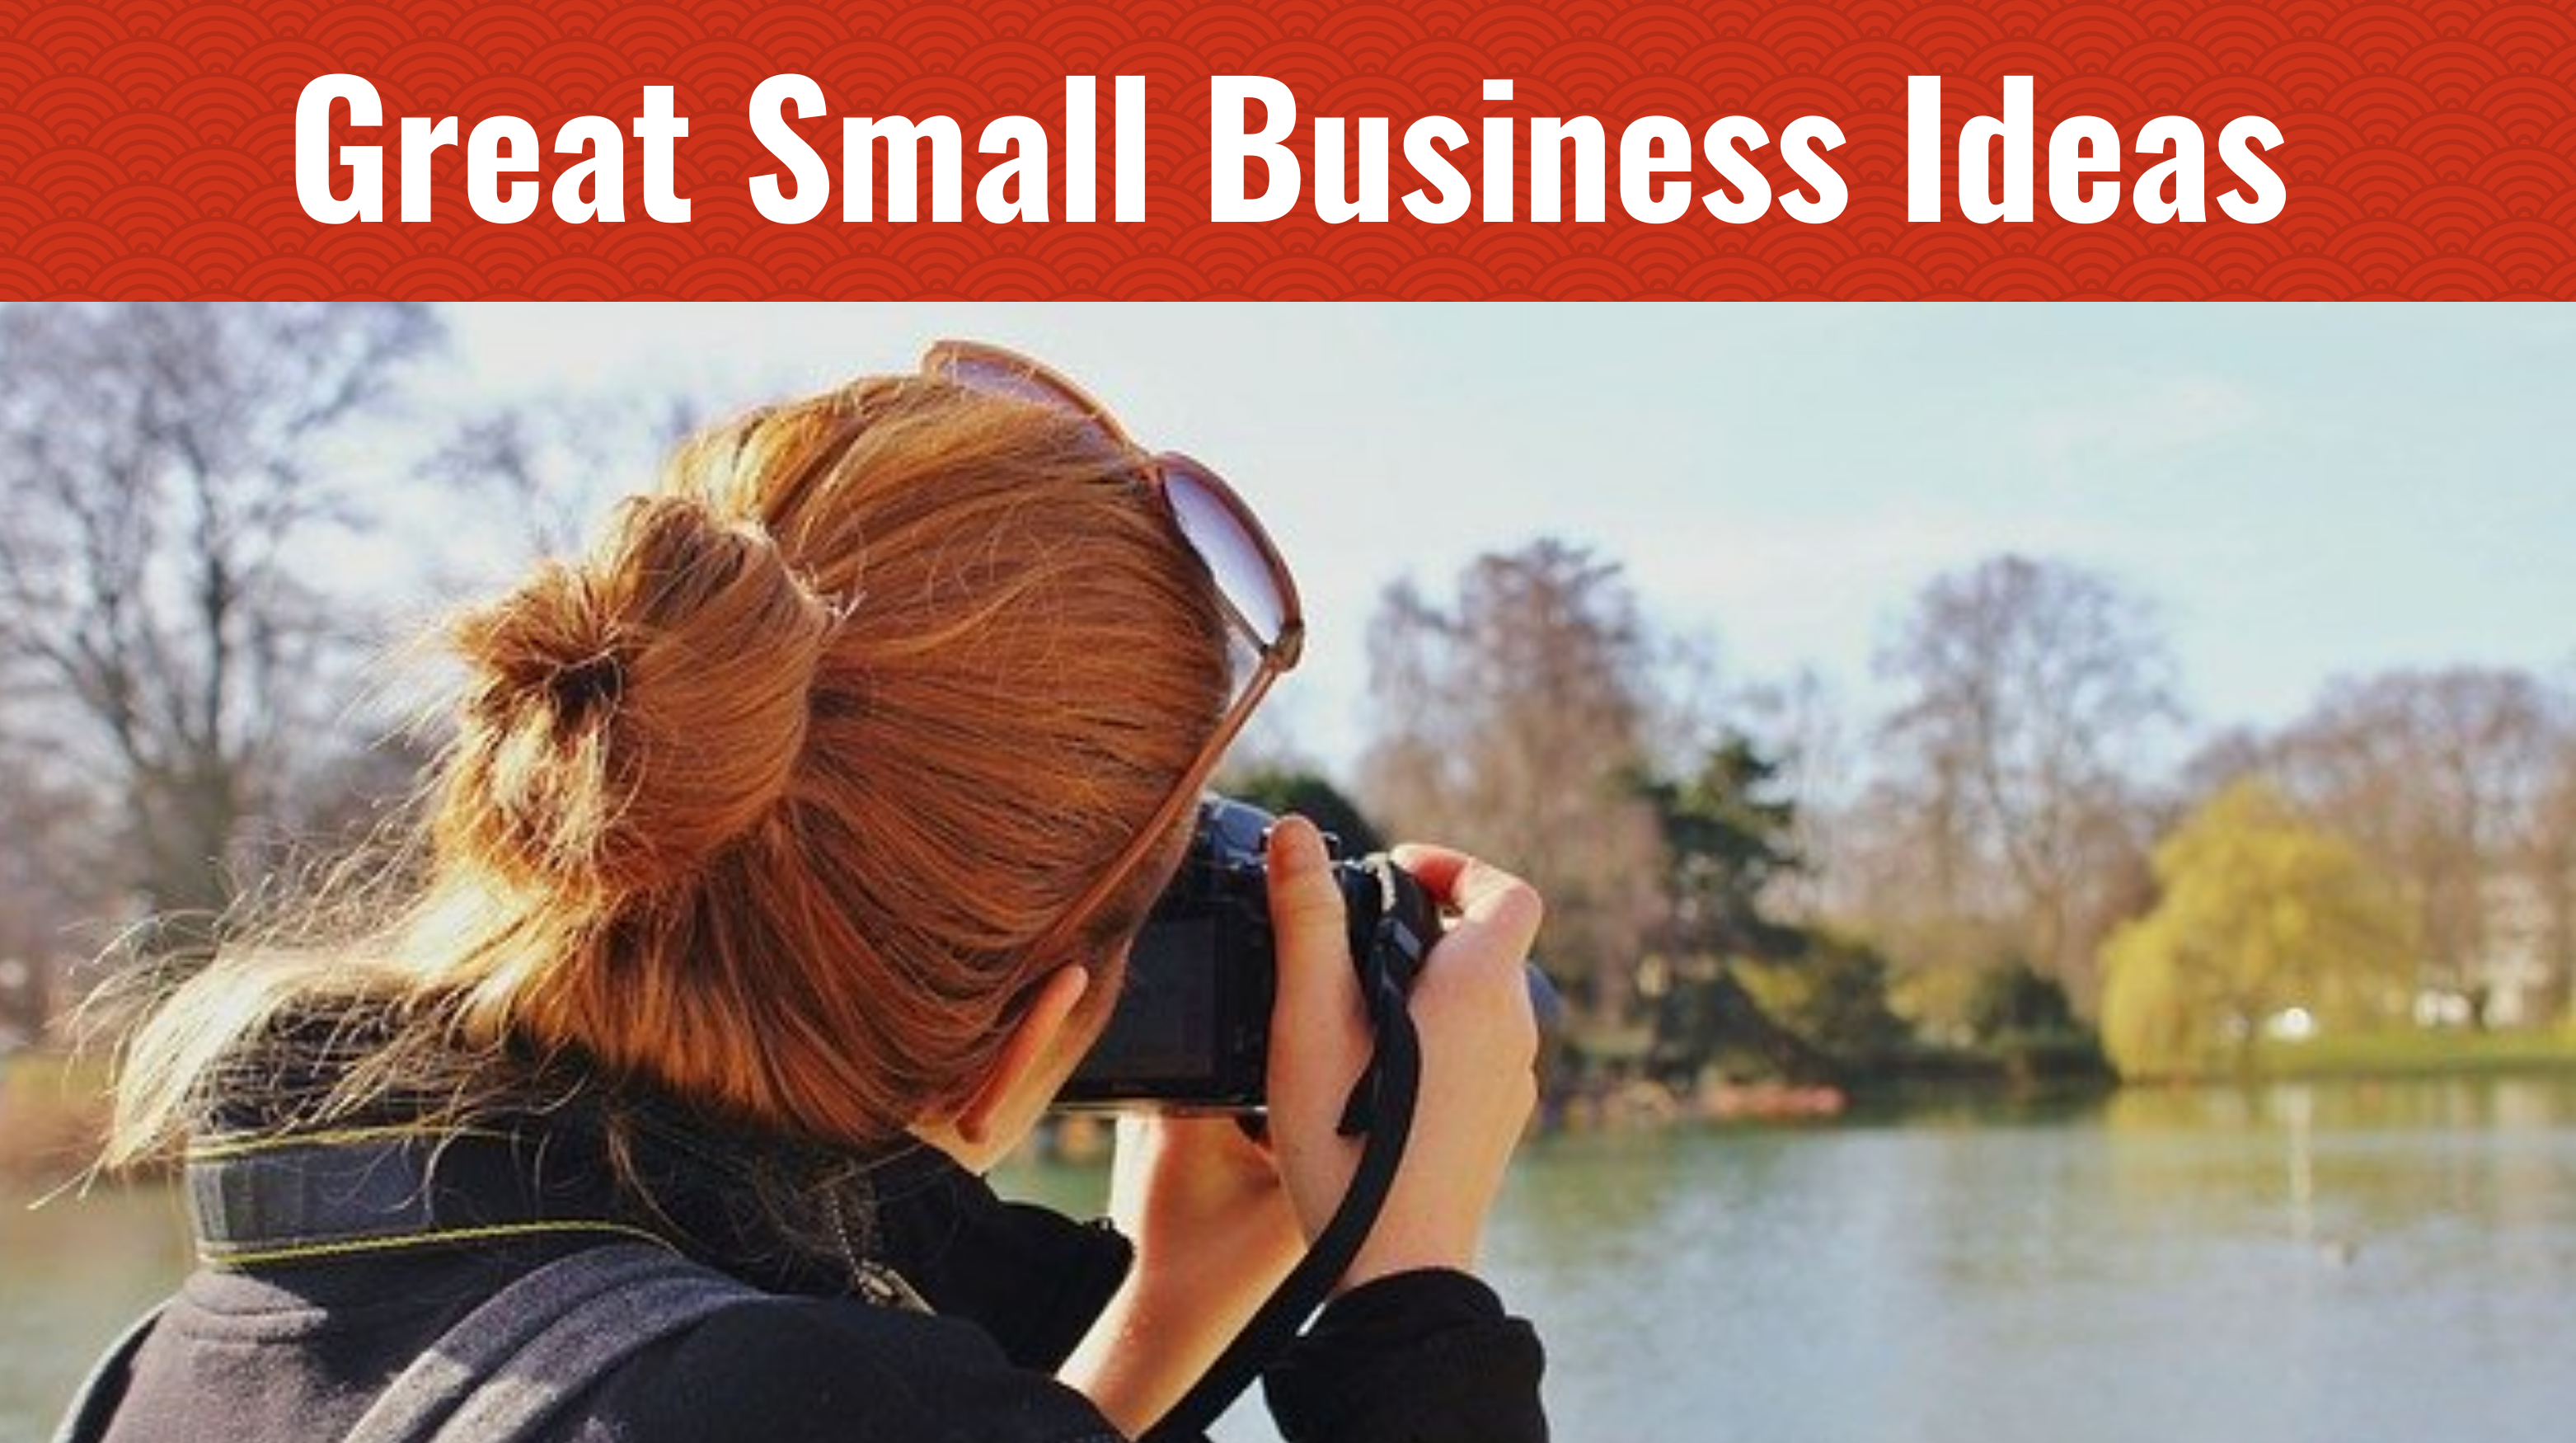 Great Small Business Ideas - Find 51 of Them Here - Small Business Trends